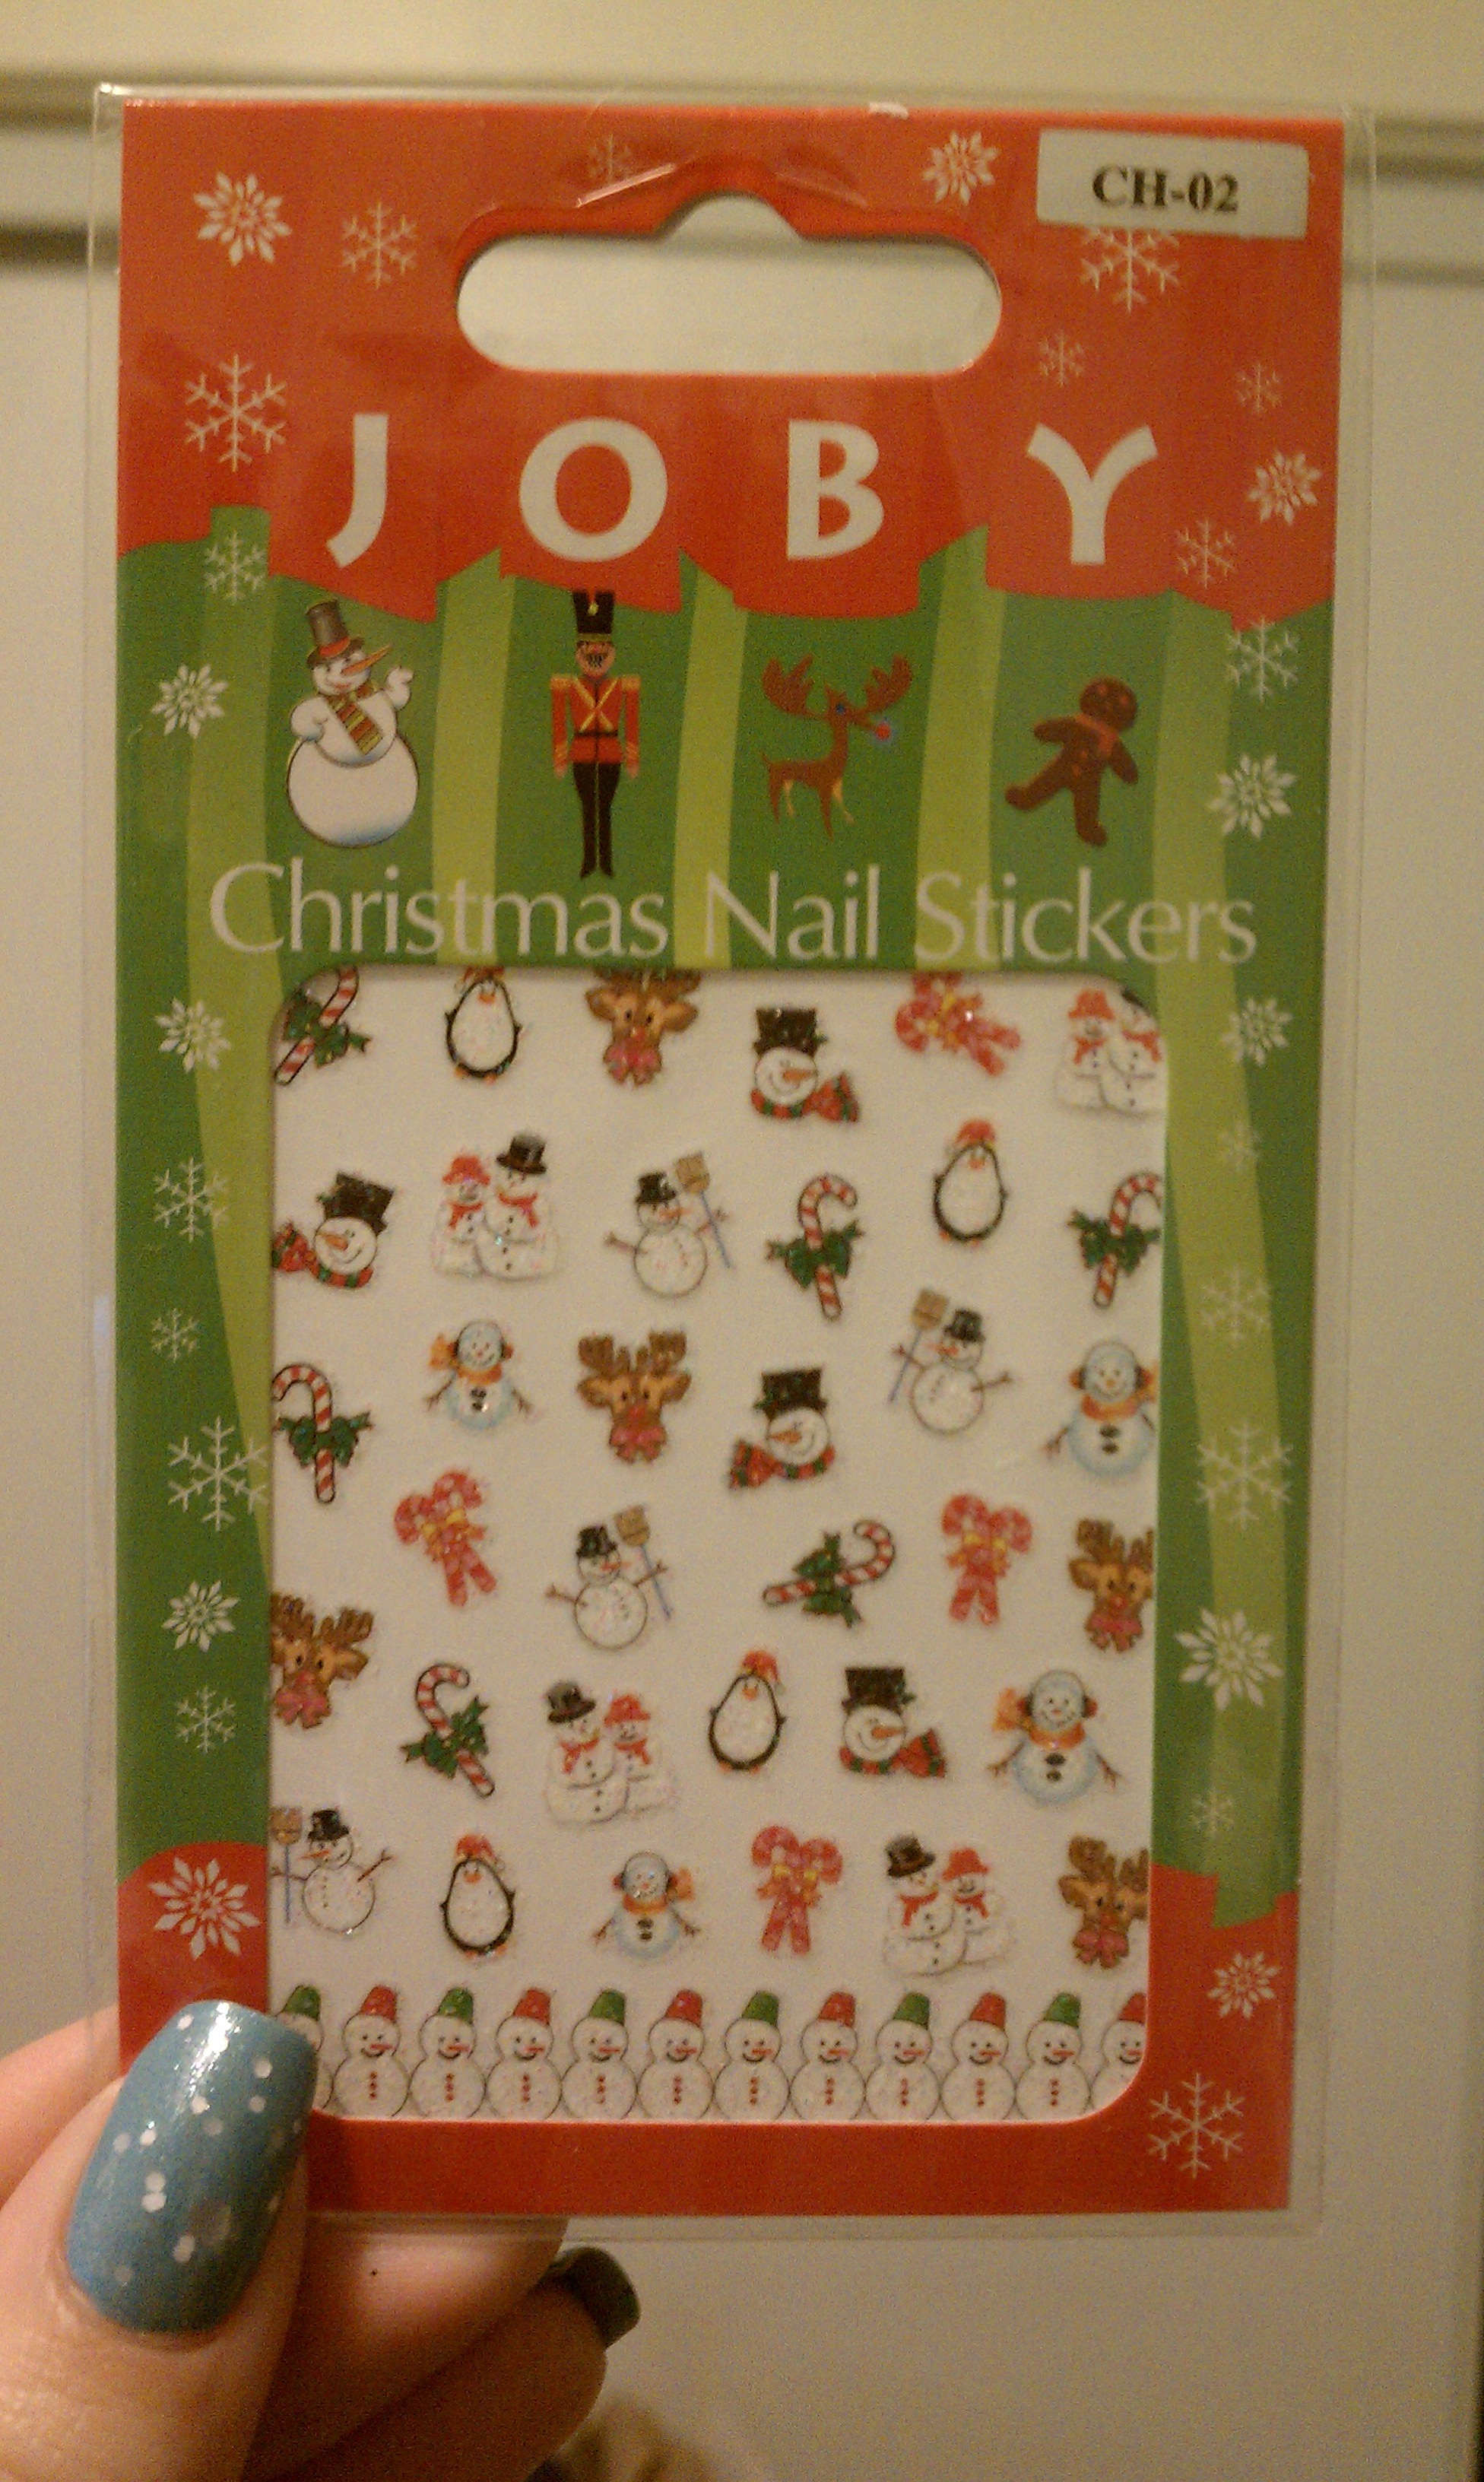 Joby Nail Art Holiday Nail Stickers Review and GIVEAWAY!